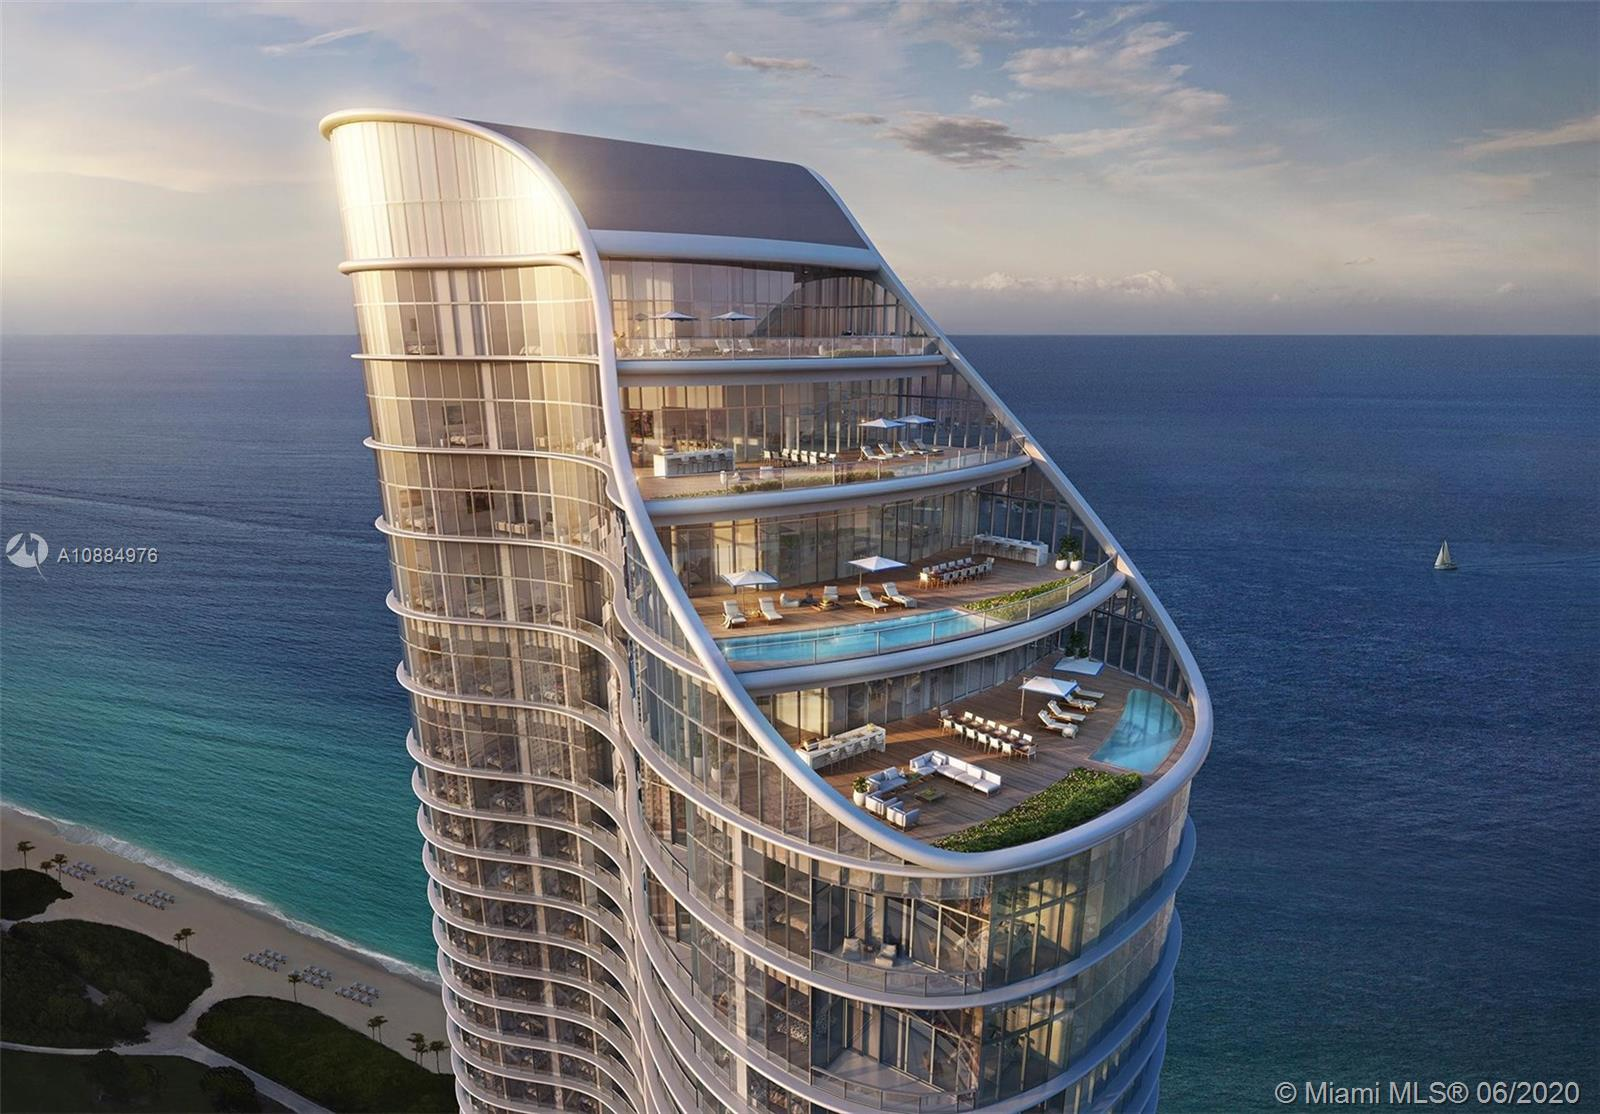 Beautiful unit in Ritz Carlton Sunny Isles with split floor plan, two bedroom plus den with incredible ocean views, 10ft ceilings, great kitchen and beautiful bathrooms. The unit has 1,750 sqft of living area and 1,995 sqft of total area. Building has every amenity you can think of, exquisitely designed by Michele Bönan. Building amenities include: 24 hour Security, Movie theater, Oceanfront Gym and Spa, Wine lounge, Cigar lounge, Game room, Pools and Beach Club.